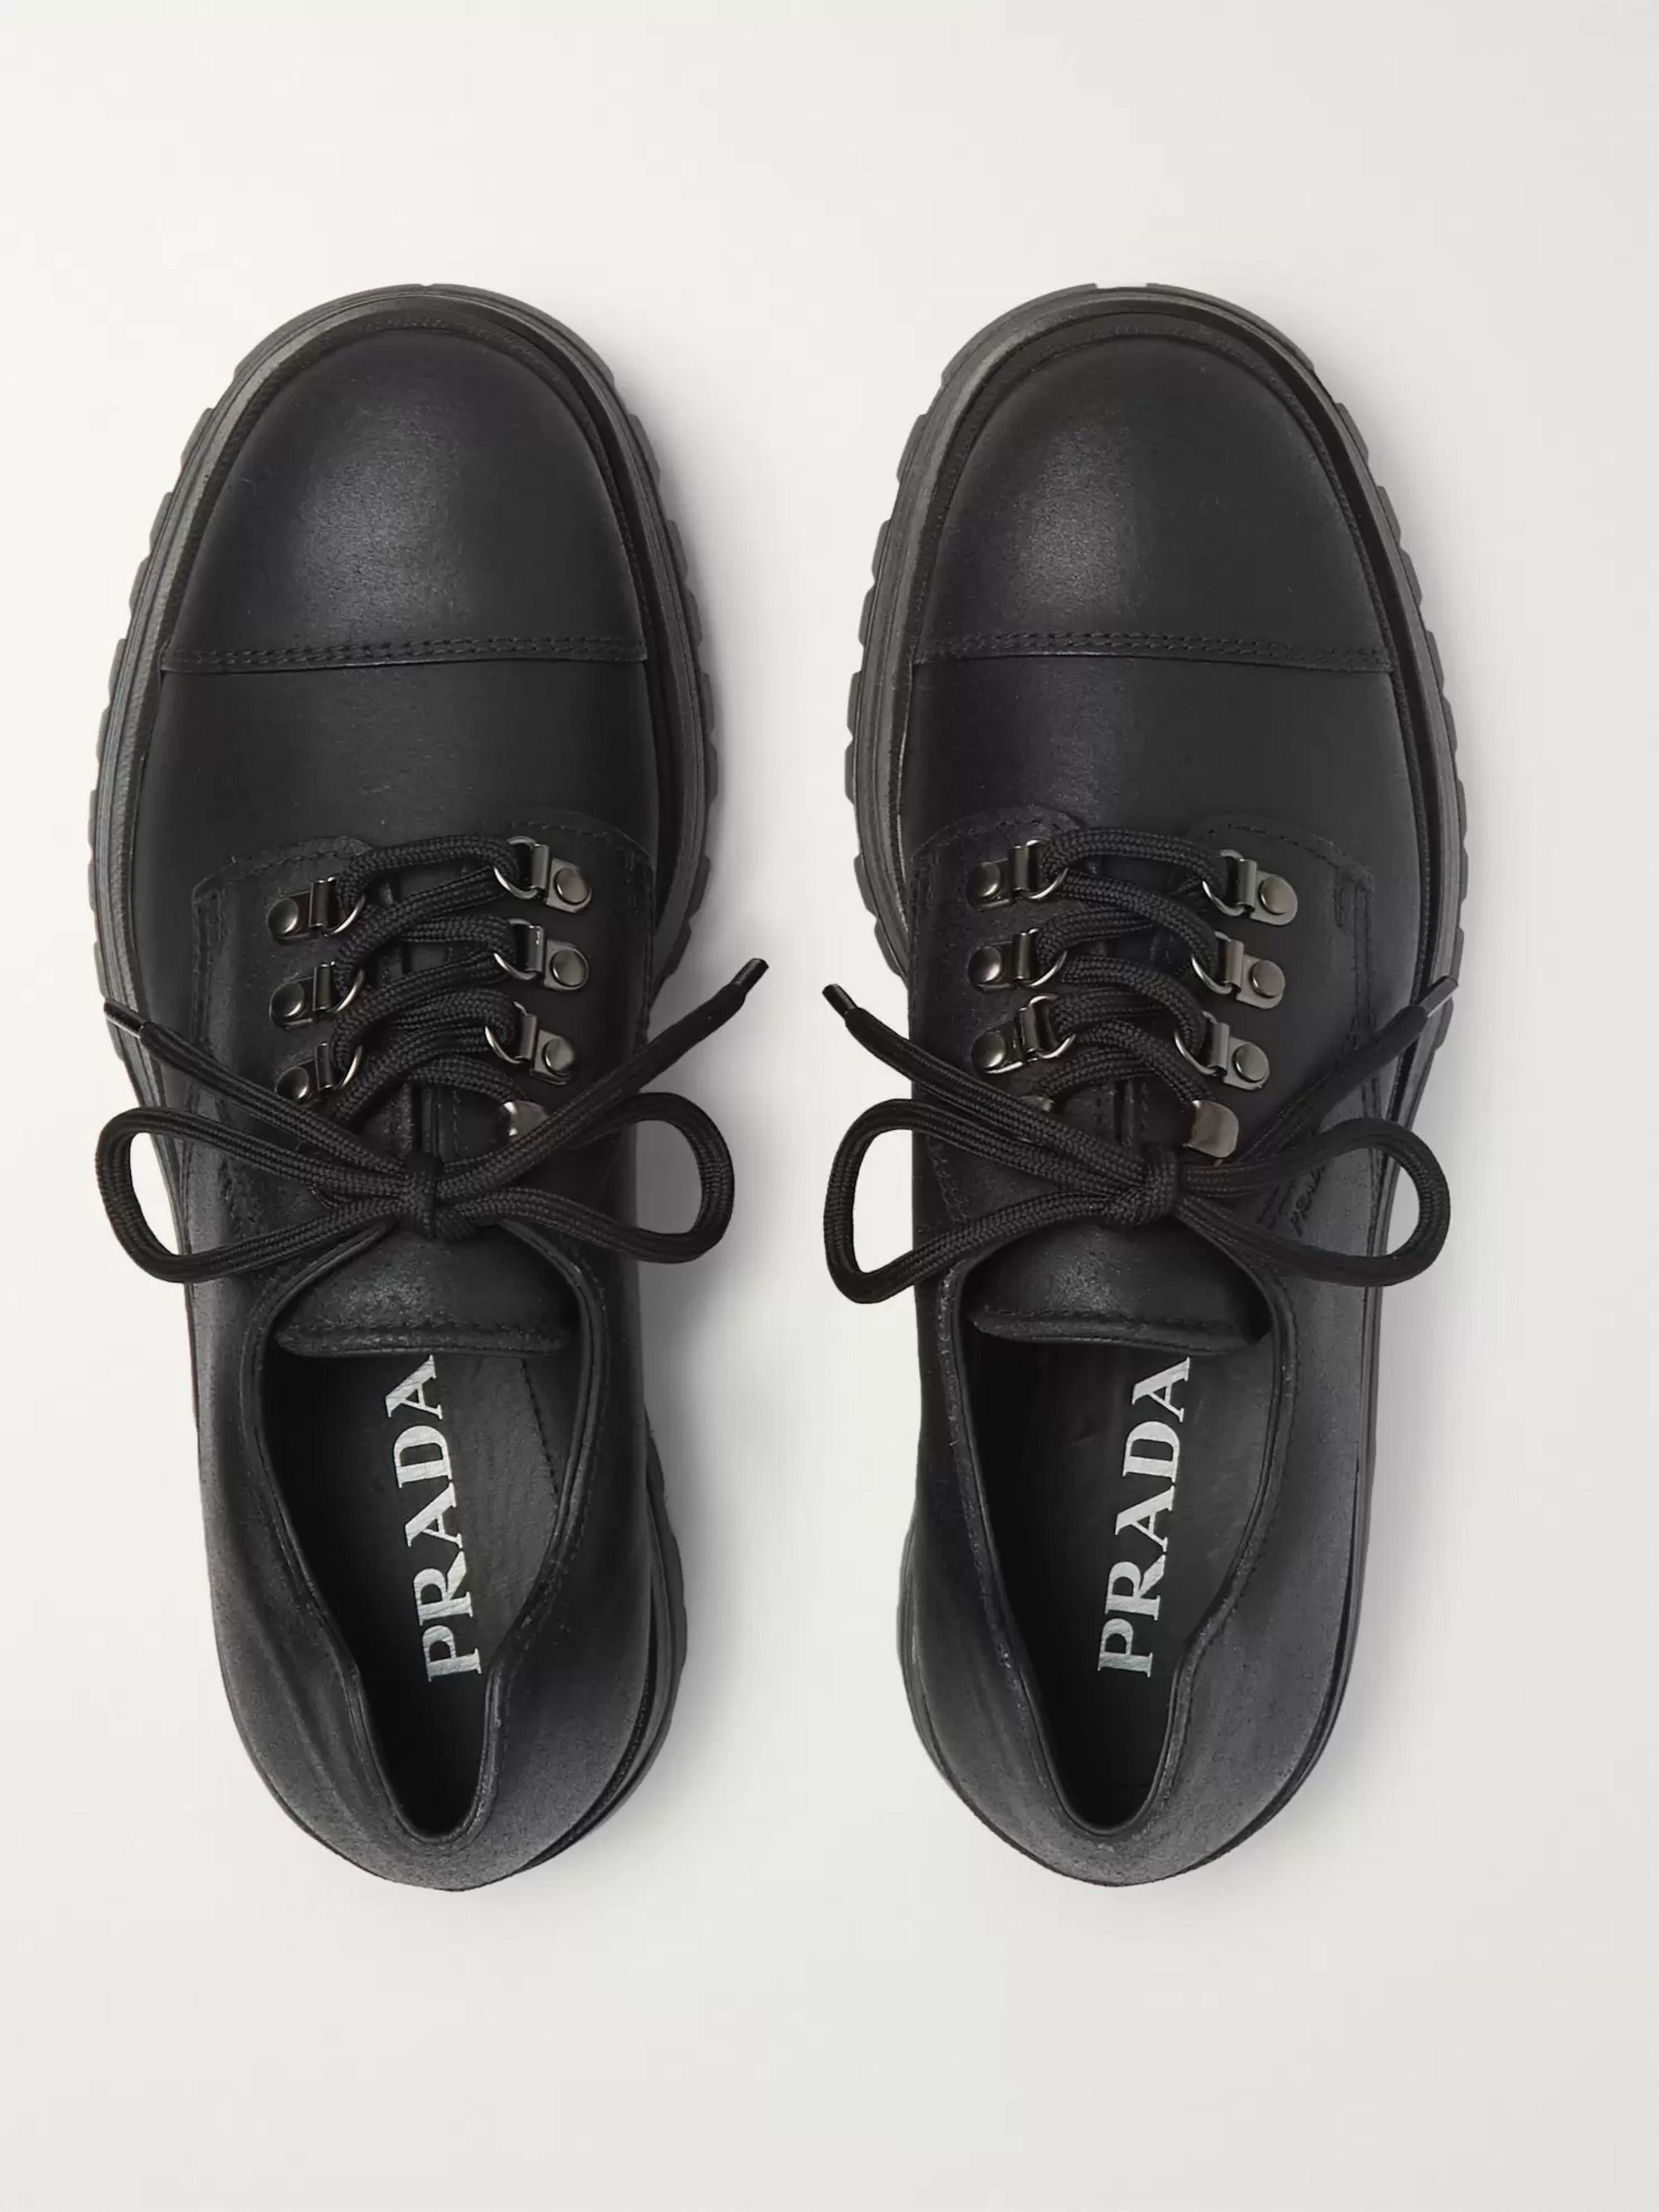 Prada Cap-Toe Leather Derby Shoes